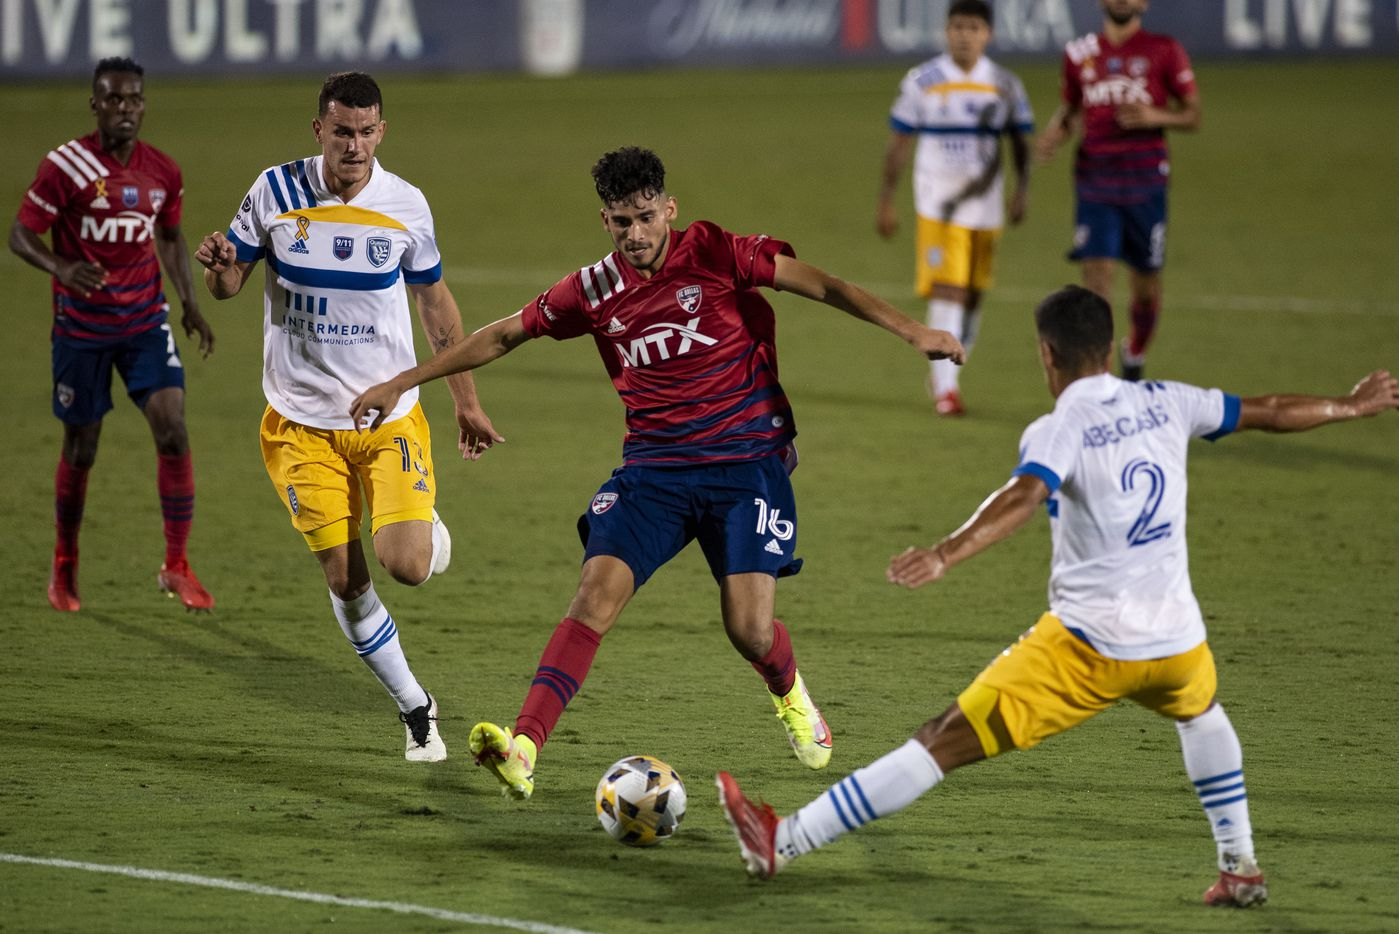 FC Dallas forward Ricardo Pepi (16) looks to get past San Jose Earthquake defenders to score during FC DallasÕ home game against the San Jose Earthquakes at Toyota Stadium in Frisco, Texas on Saturday, September 11, 2021. (Emil Lippe/Special Contributor)